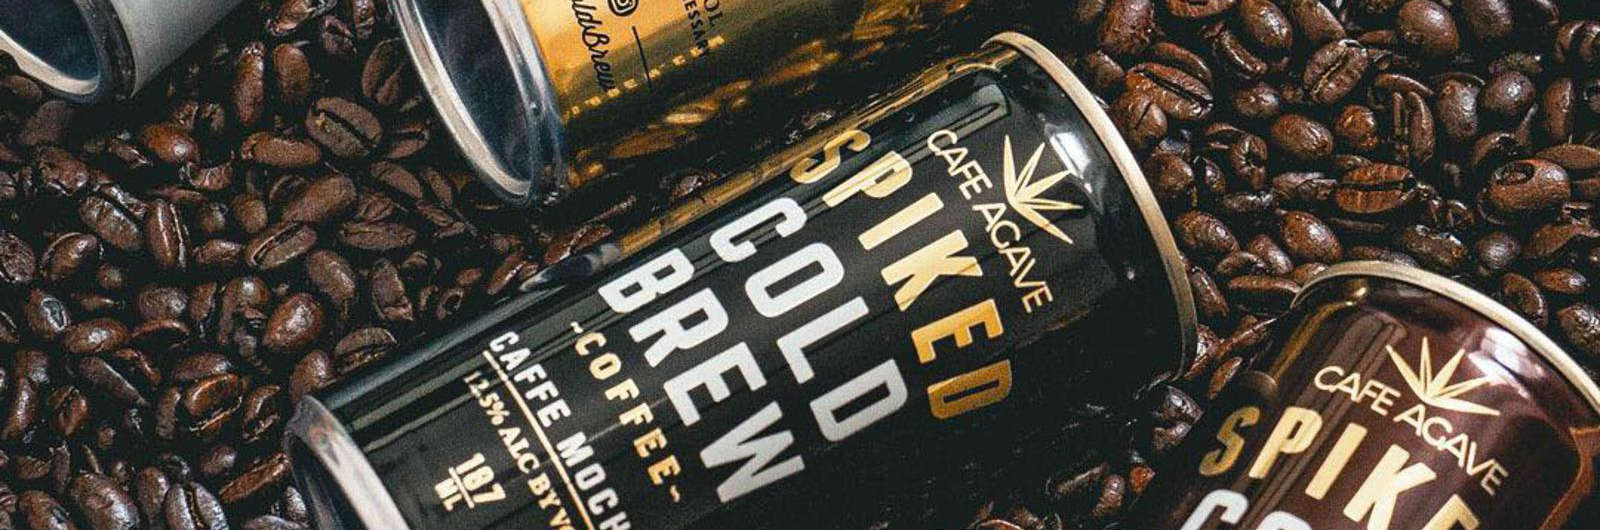 Wine-Spiked Cold Brew. In a Can.